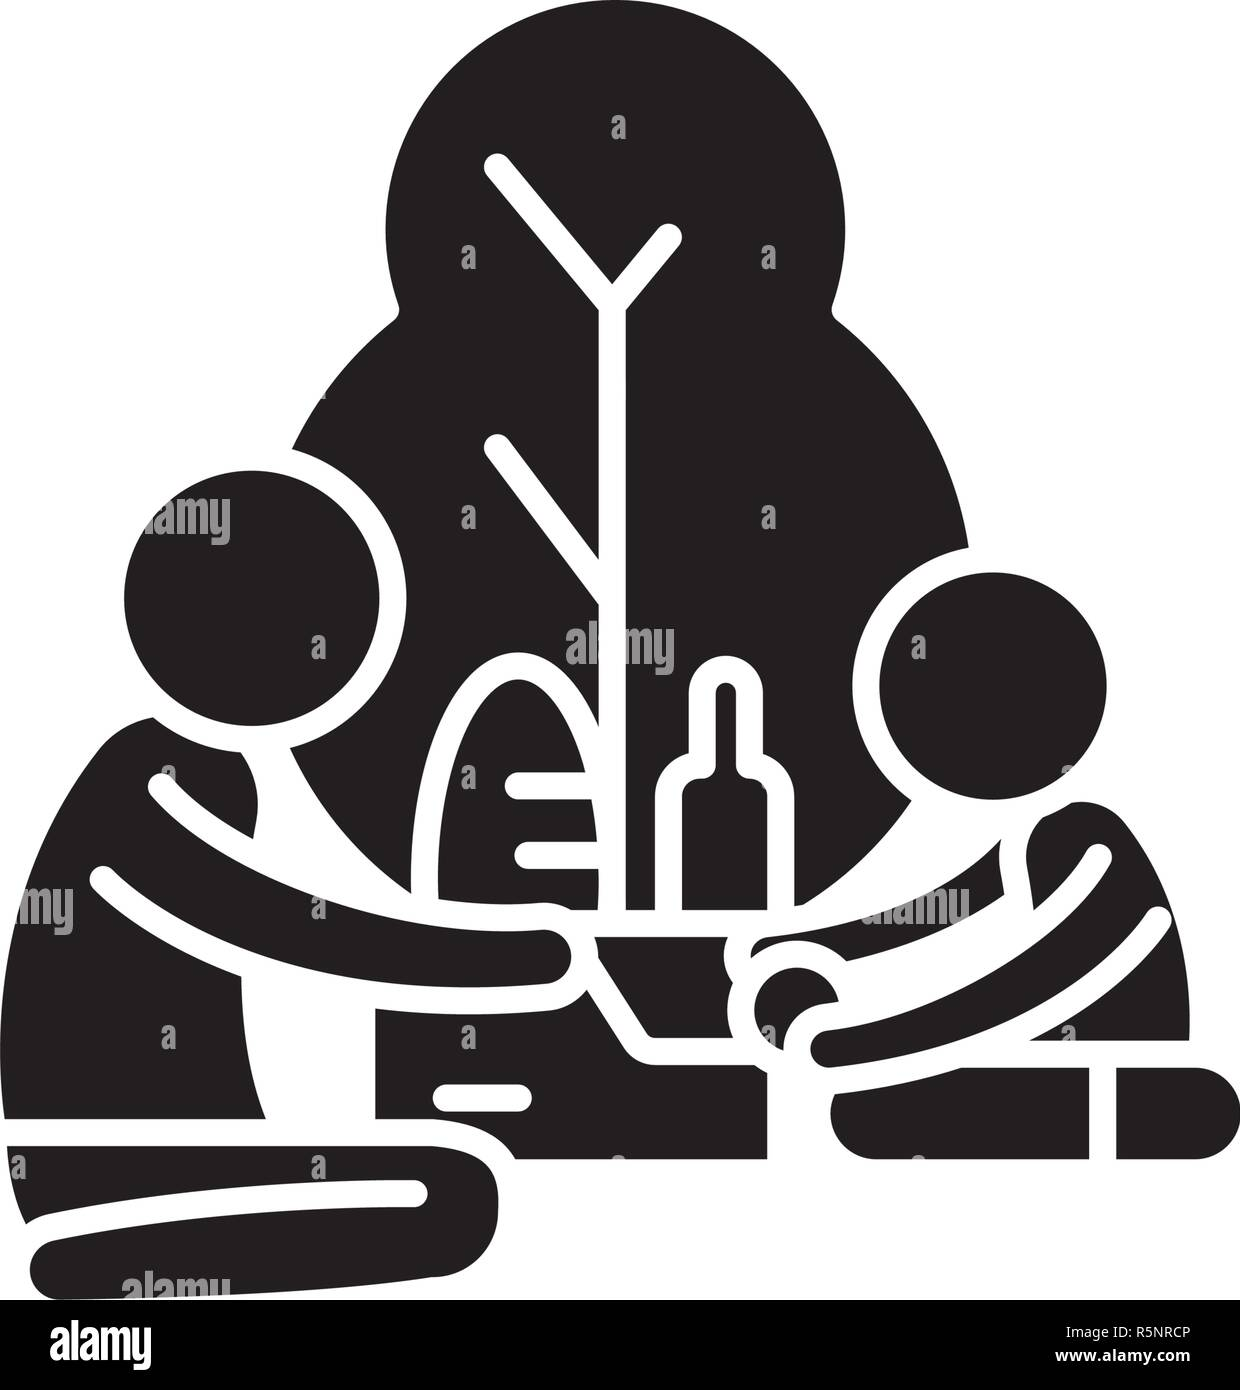 Picnic in the park black icon, vector sign on isolated background. Picnic in the park concept symbol, illustration  - Stock Vector